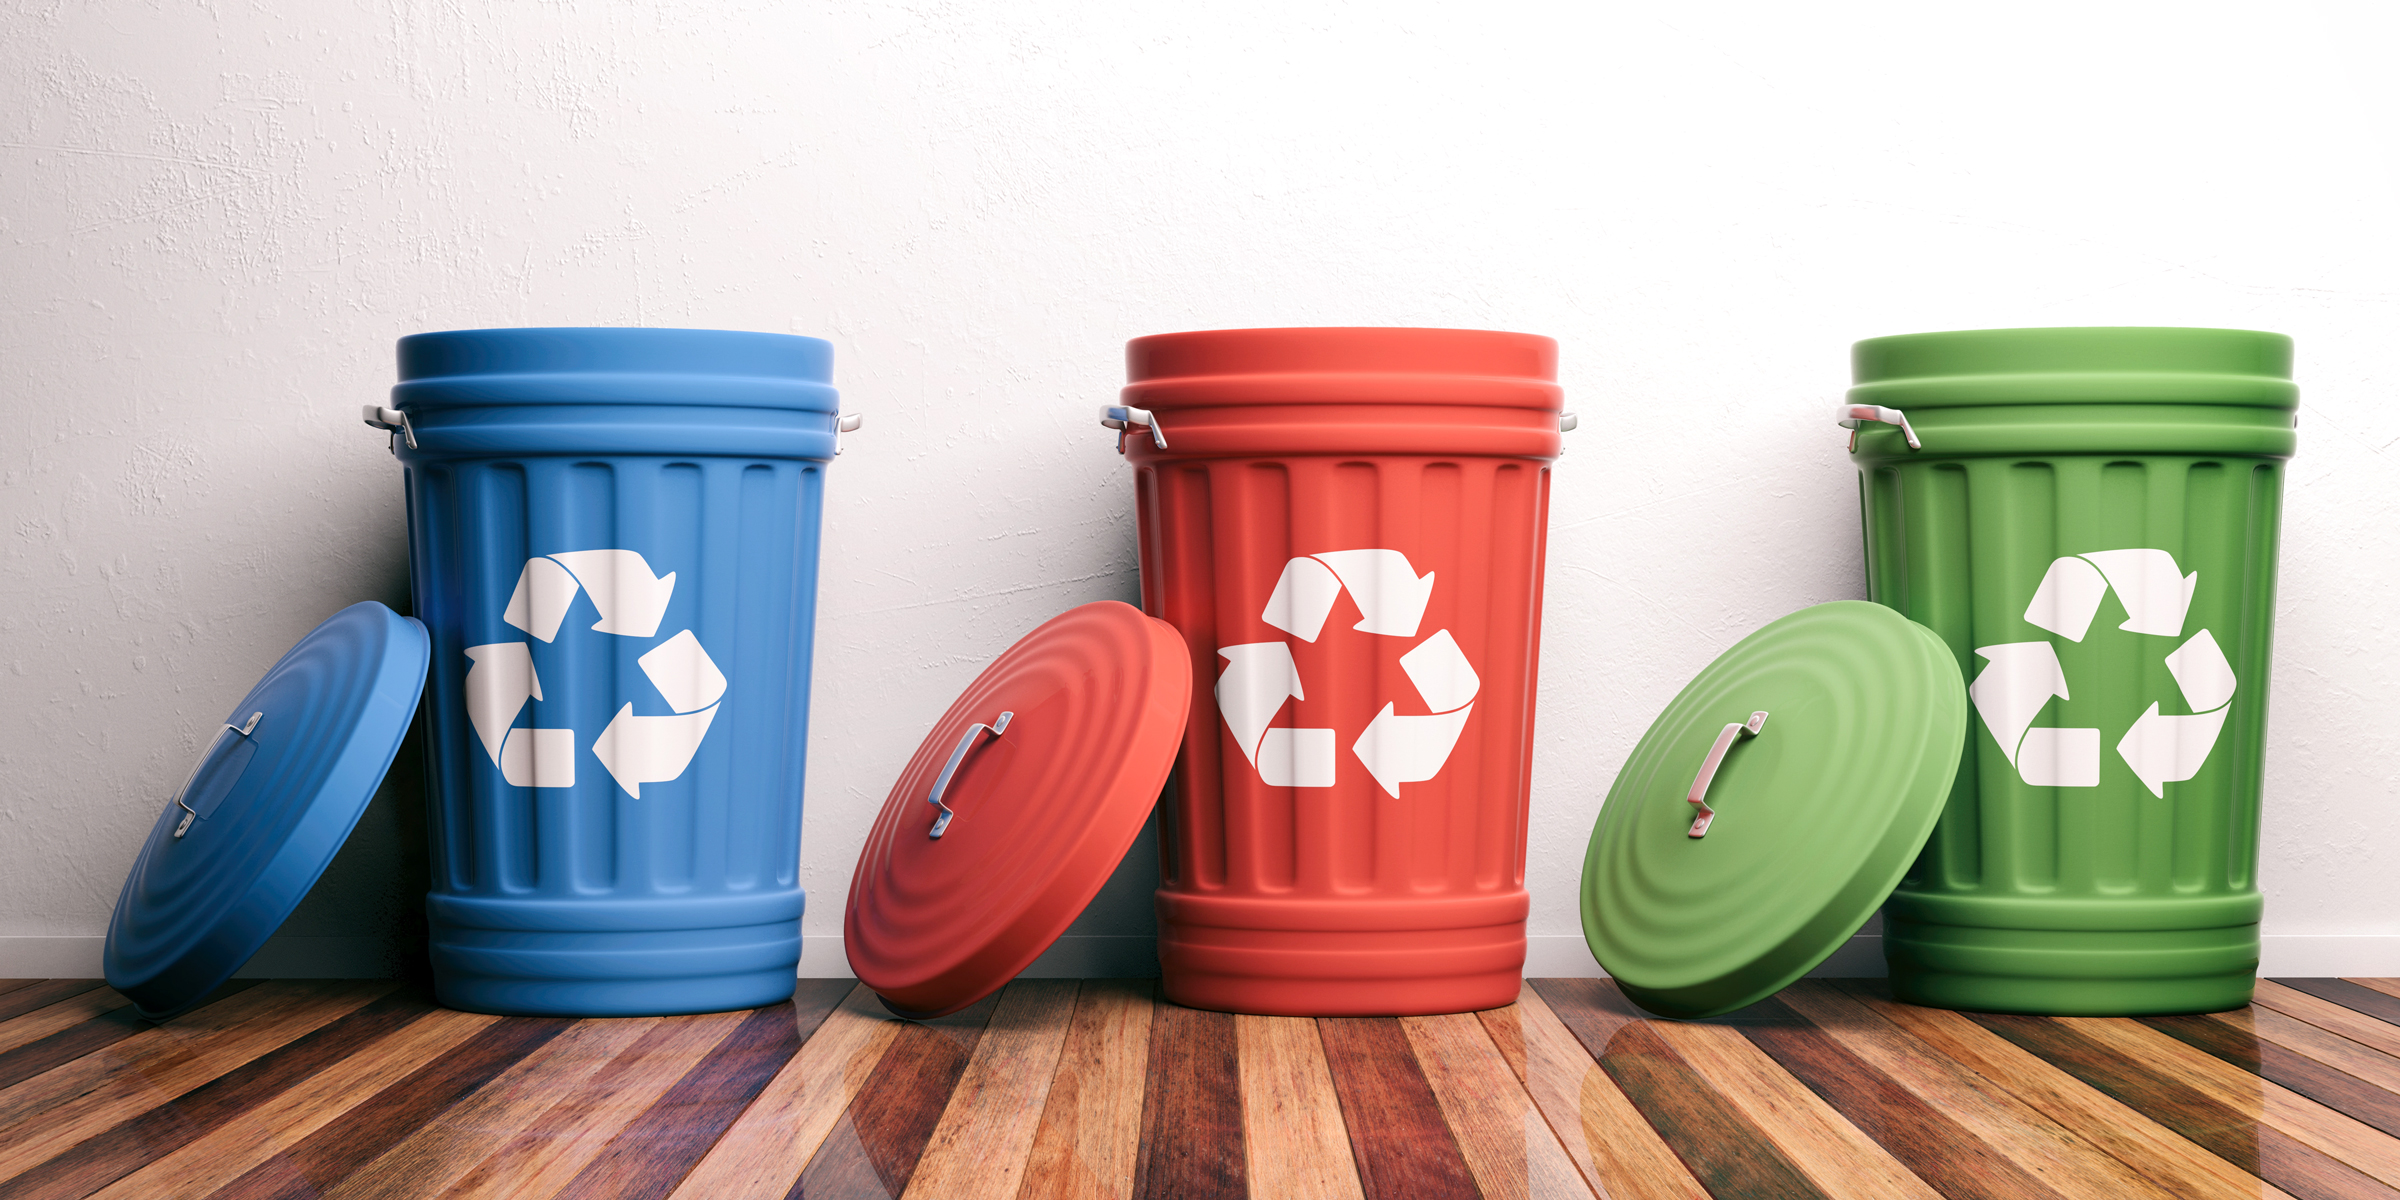 thee multi-colored recycling bins